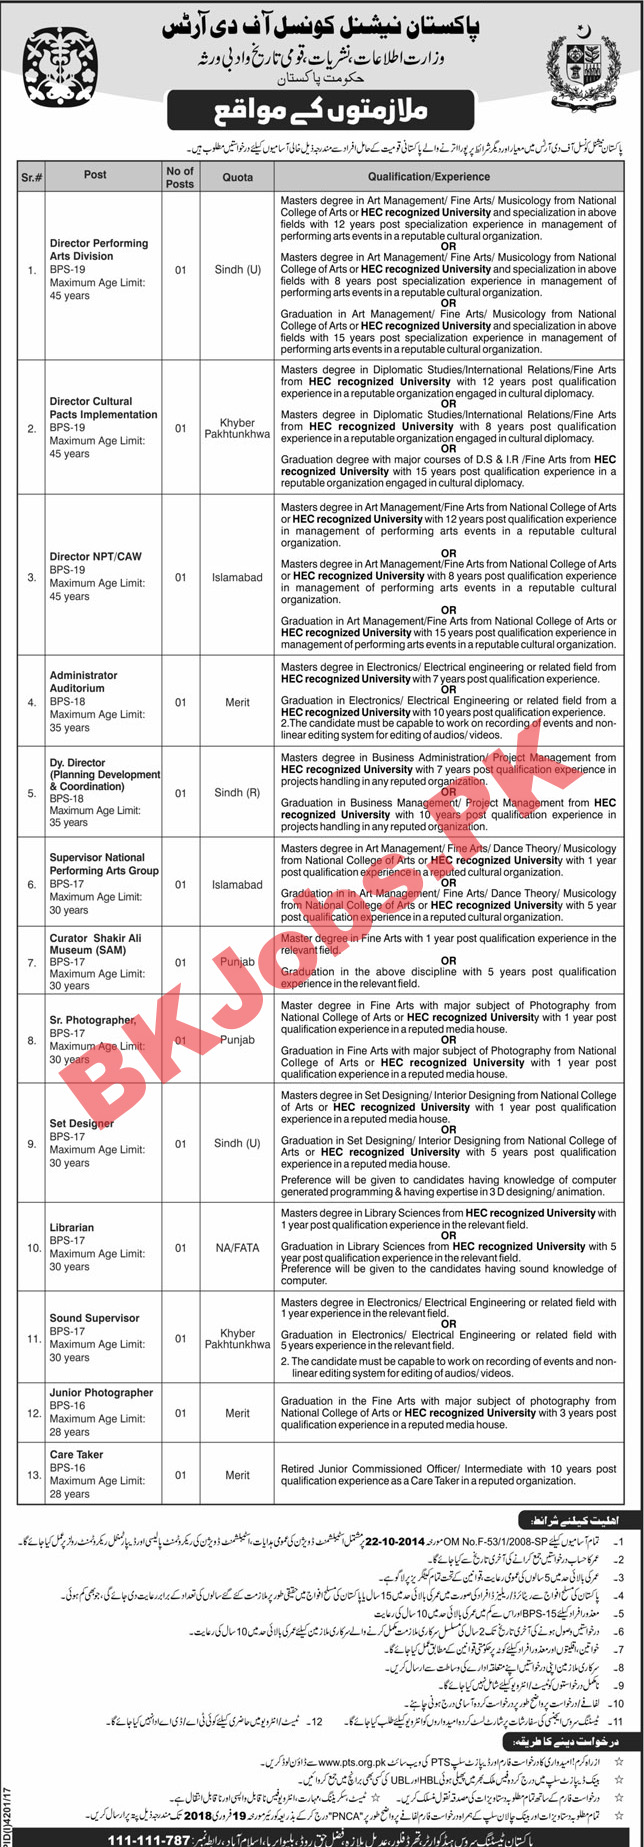 Pakistan National Council OF The Arts Islamabad Jobs for